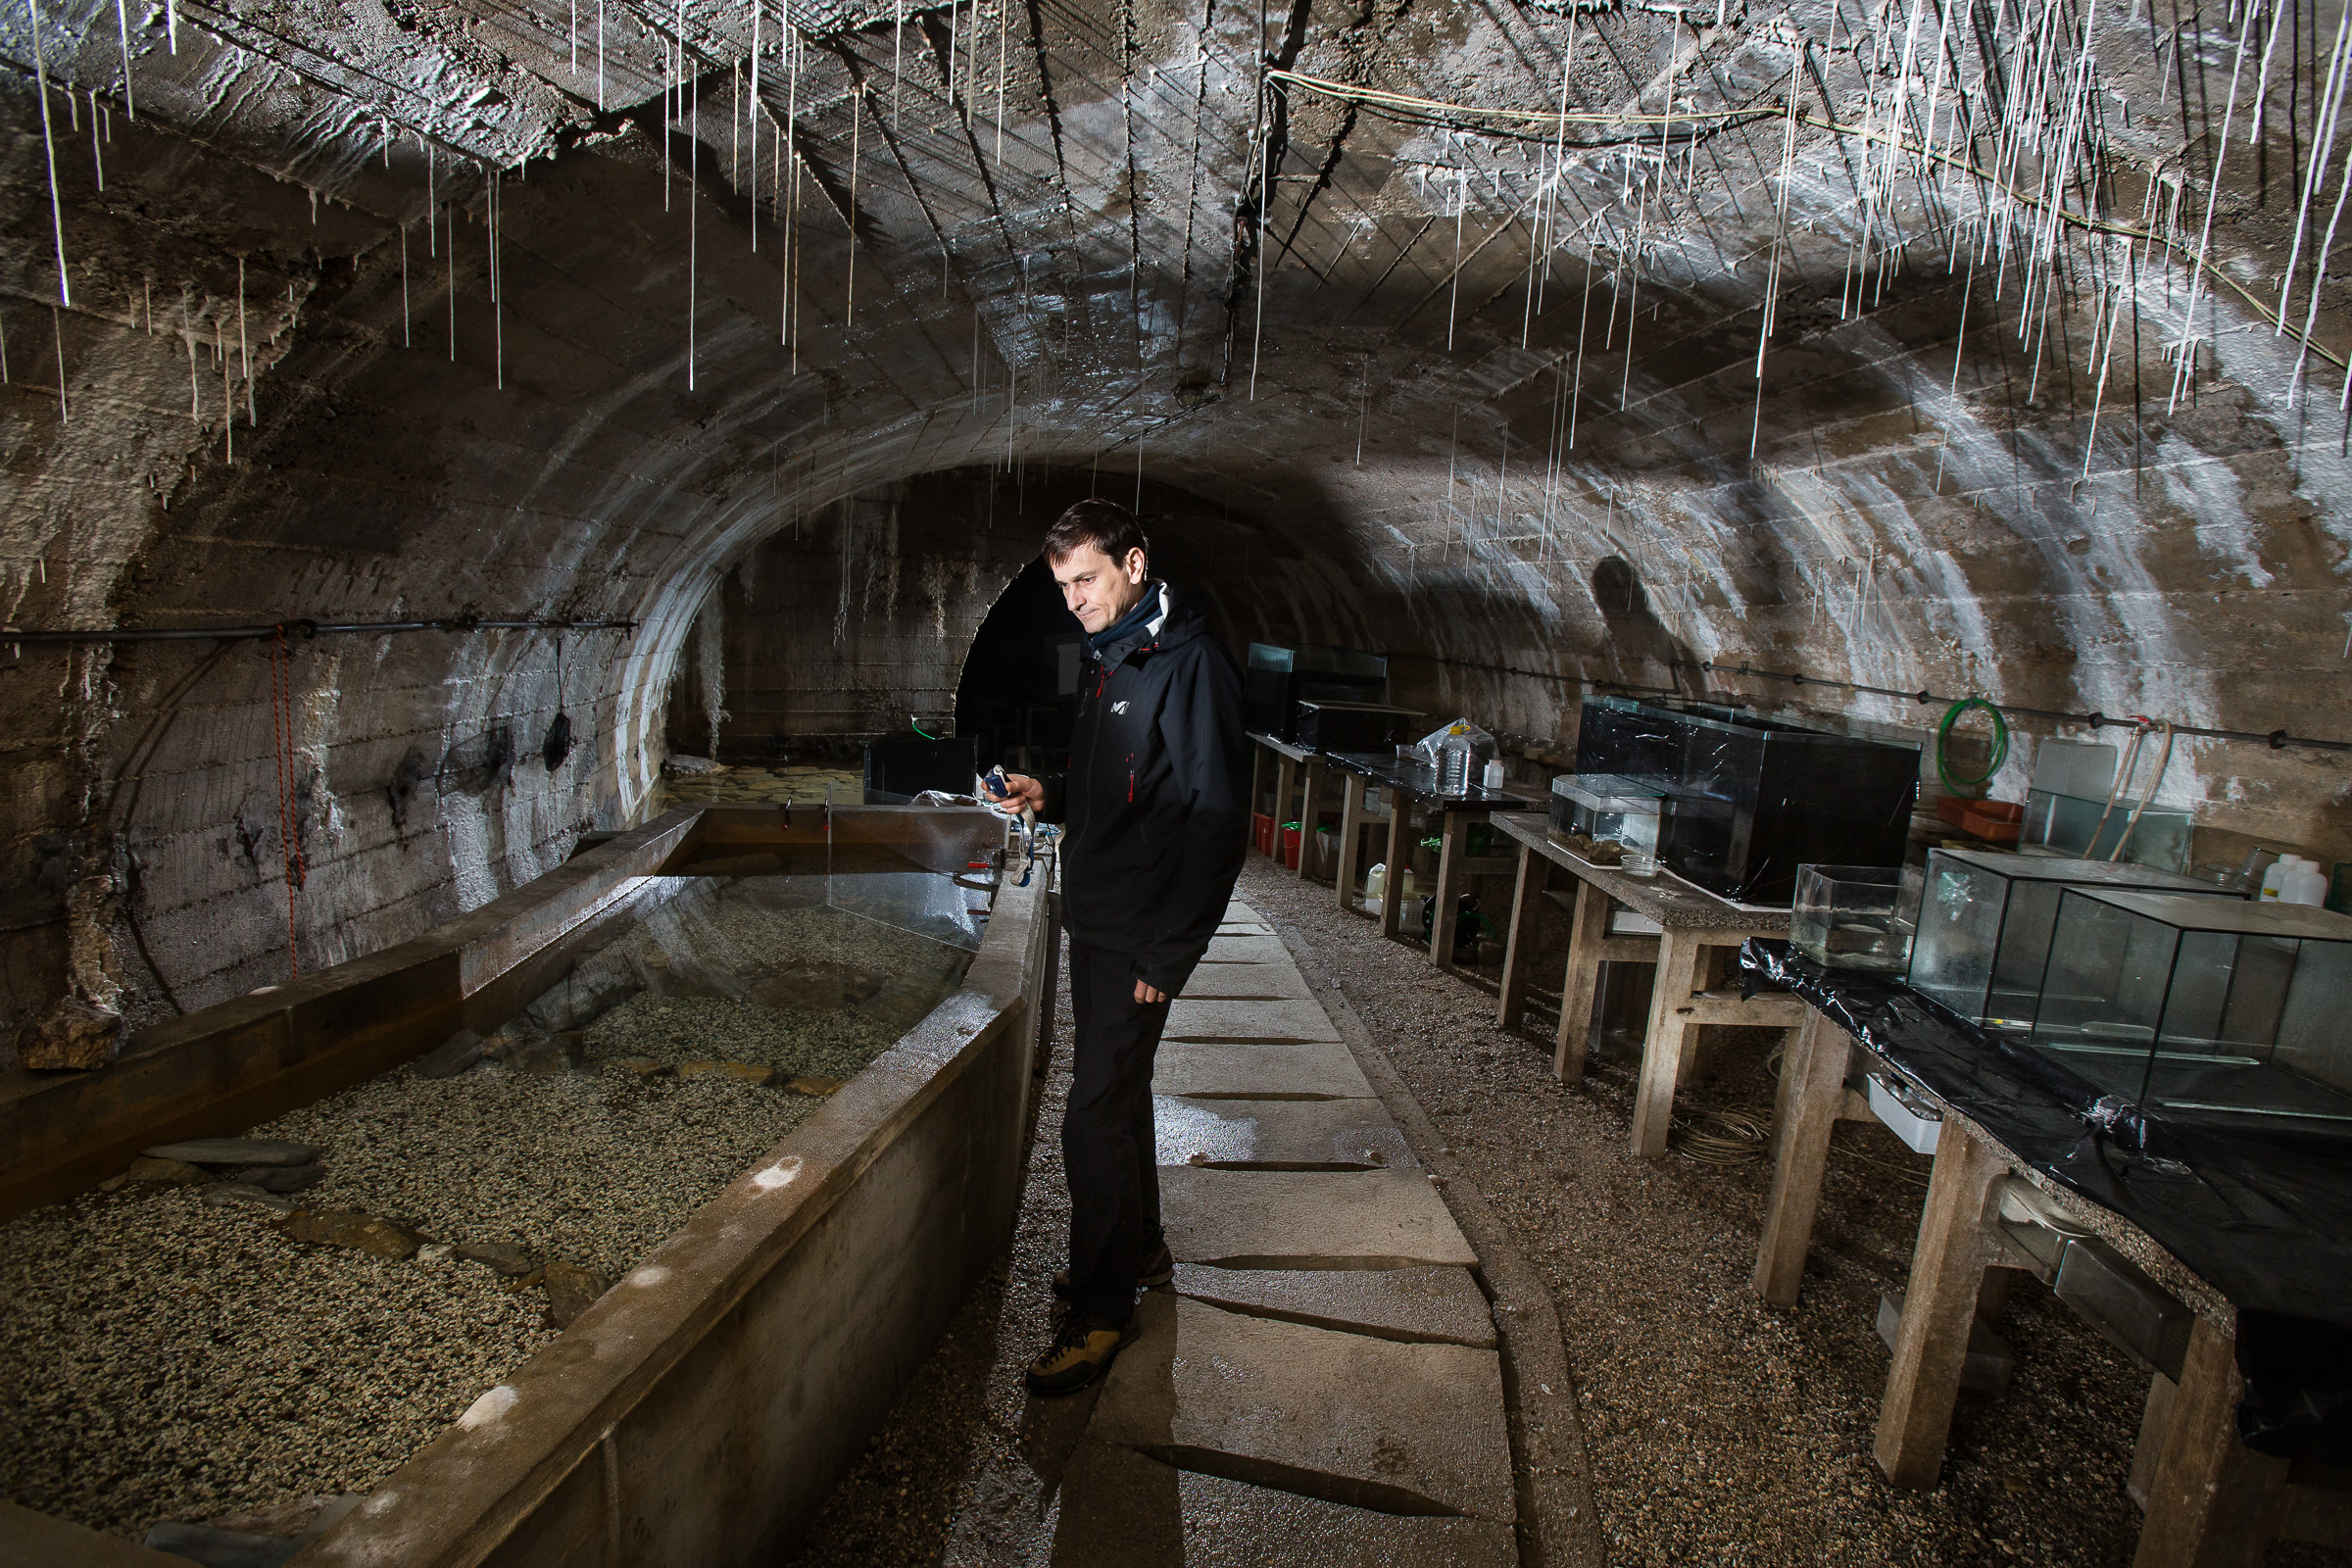 Gregor Aljančič cares for olms in the cave's main chamber, where his father established a lab 60 years ago.